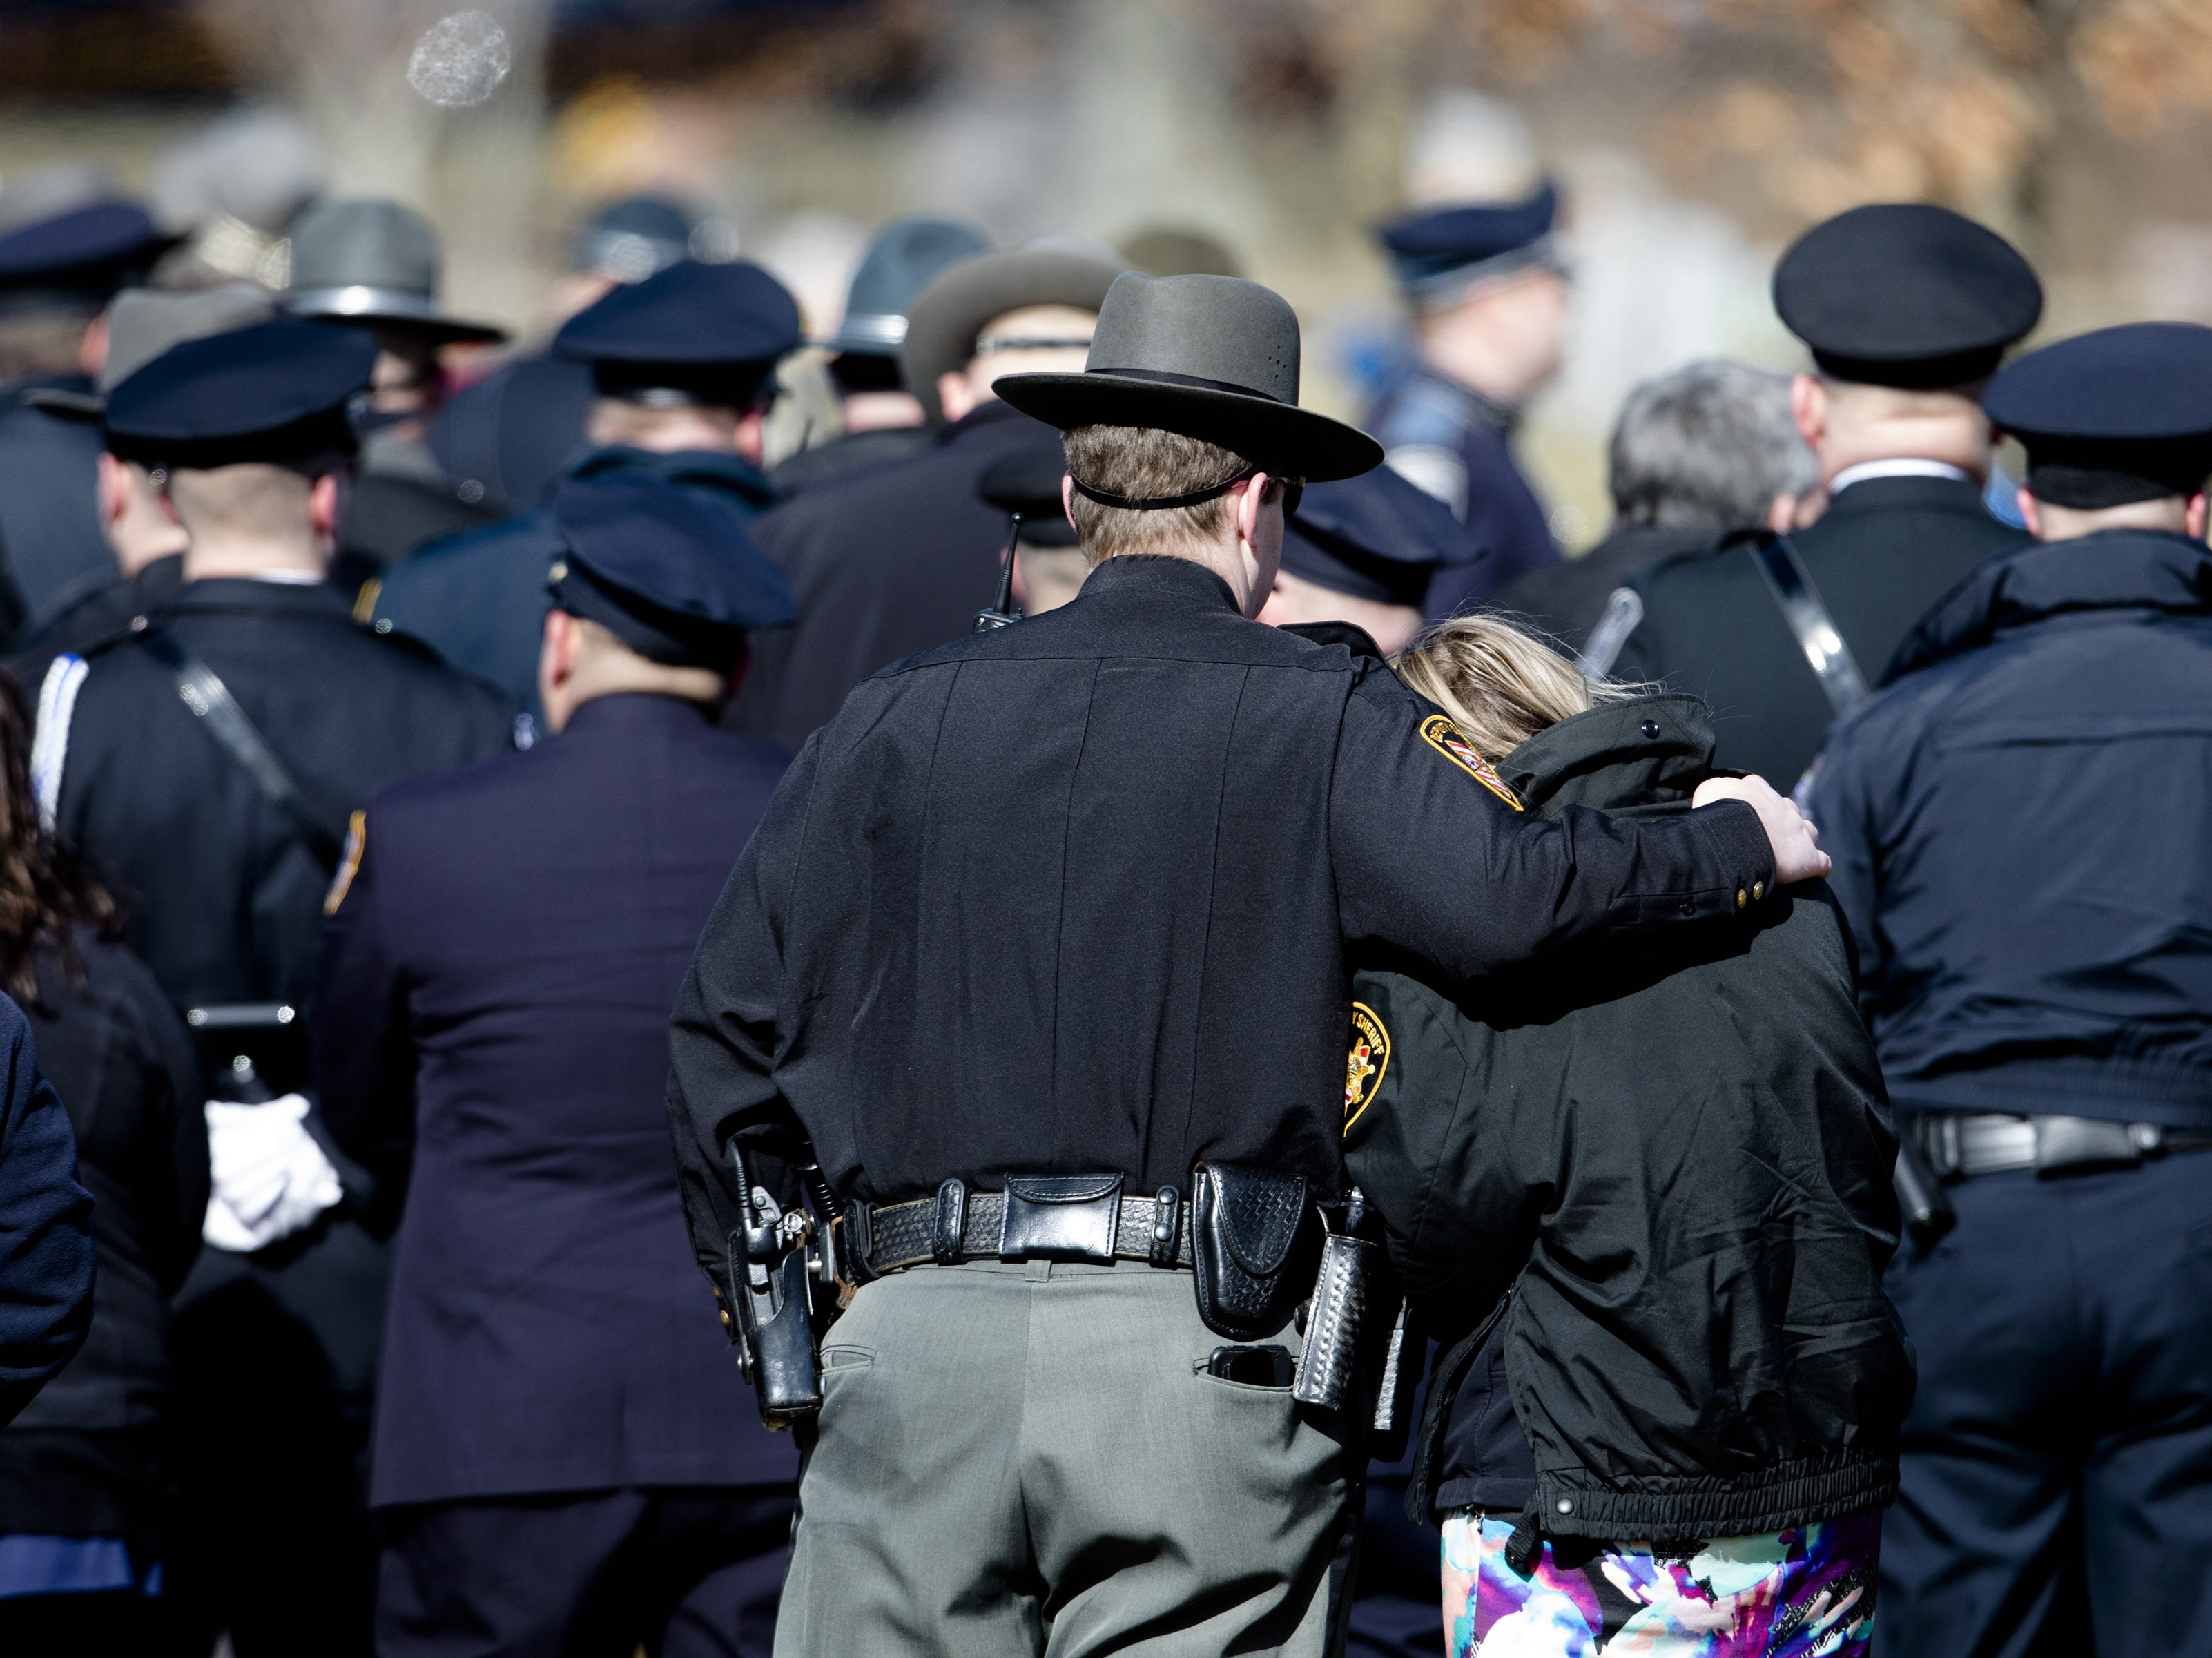 Family, friends and law enforcement arrive for the burial service of Detective Bill Brewer, a 20-year veteran of the Clermont County Sheriff's Office, on Friday, Feb. 8, 2019, at Pierce Township Cemetery in Cincinnati. Brewer, 42, of Pierce Township, died in the line of duty. He was shot Feb. 2 during a standoff. Deputy Brewer is survived by a wife and 5-year-old son.